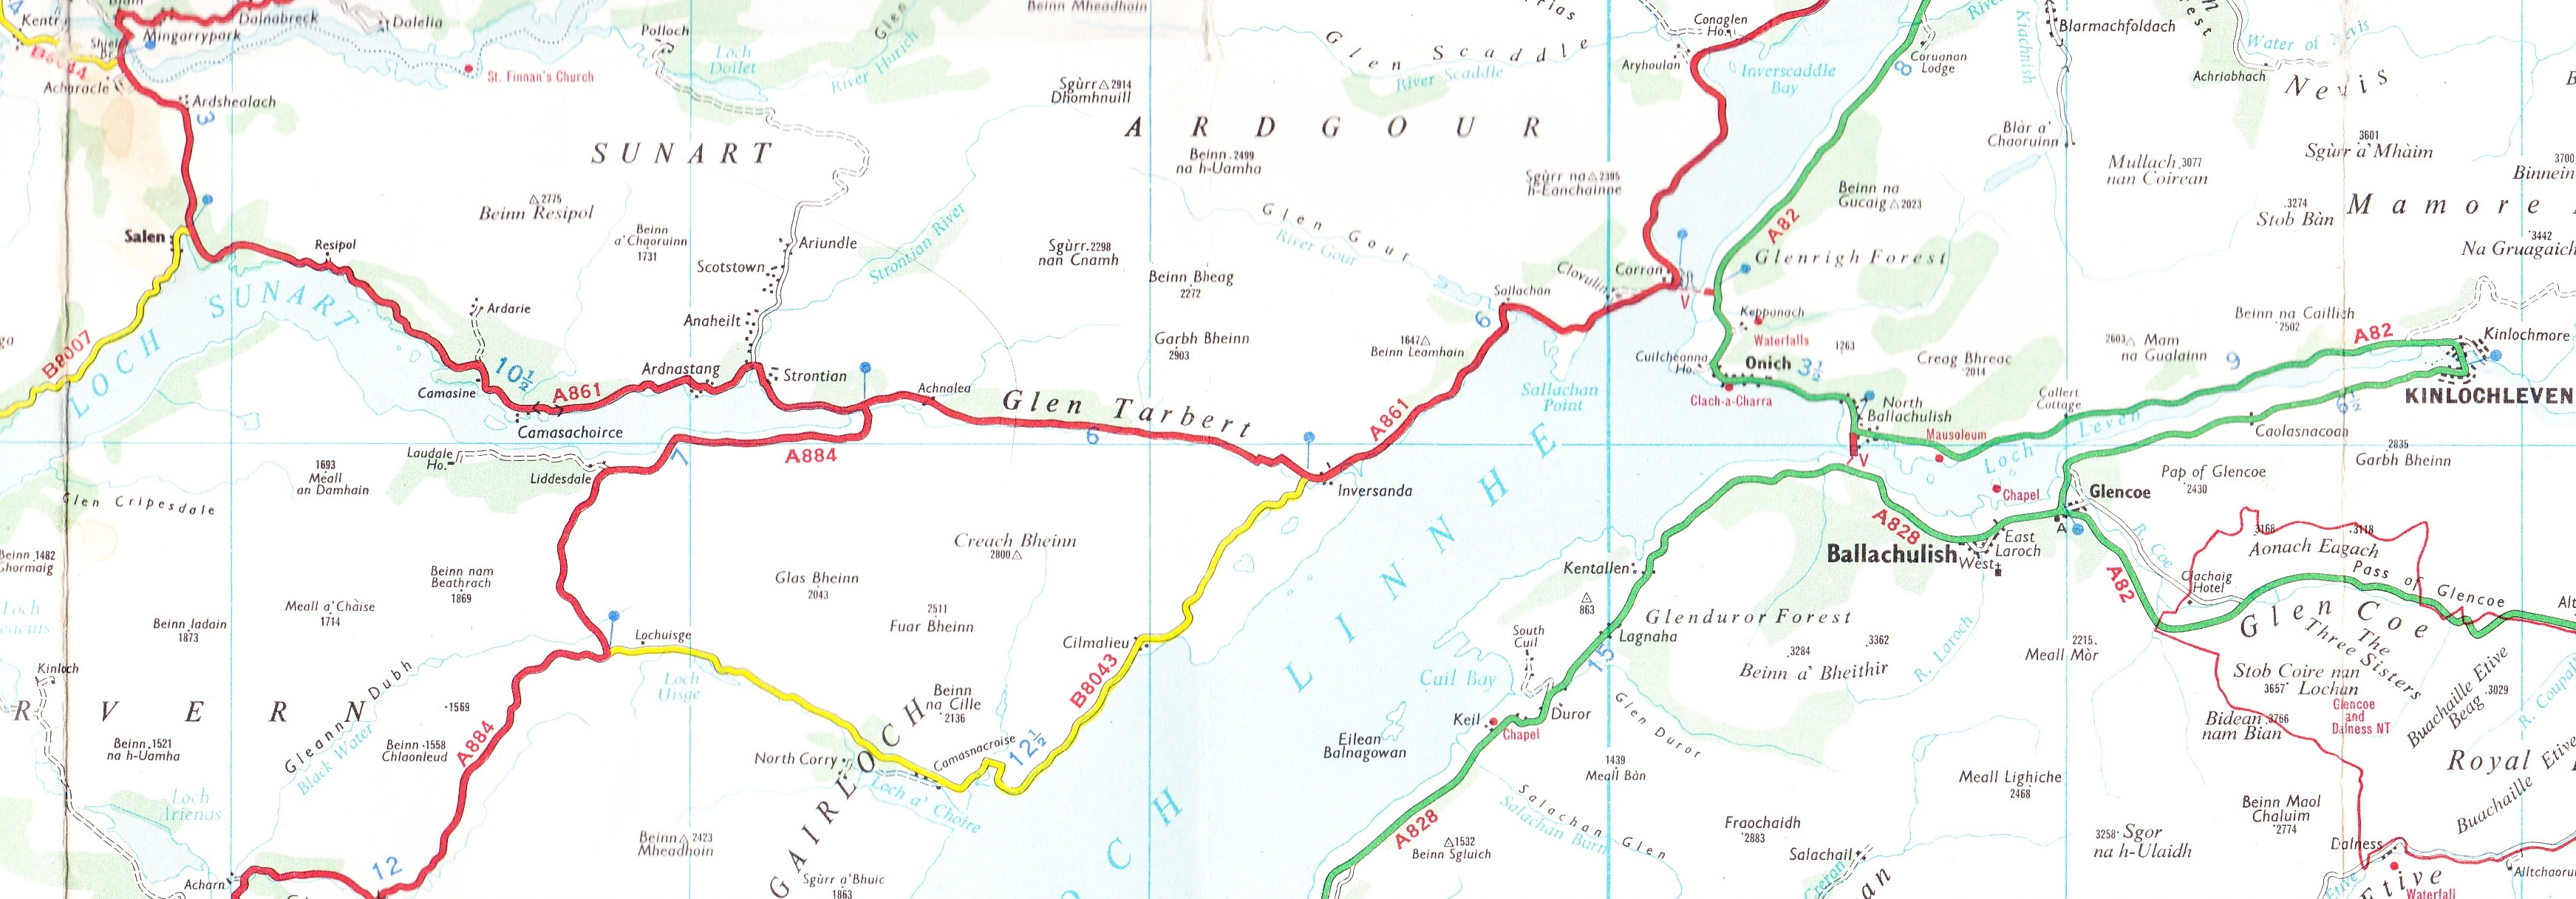 route from Glen Coe to Sunnart